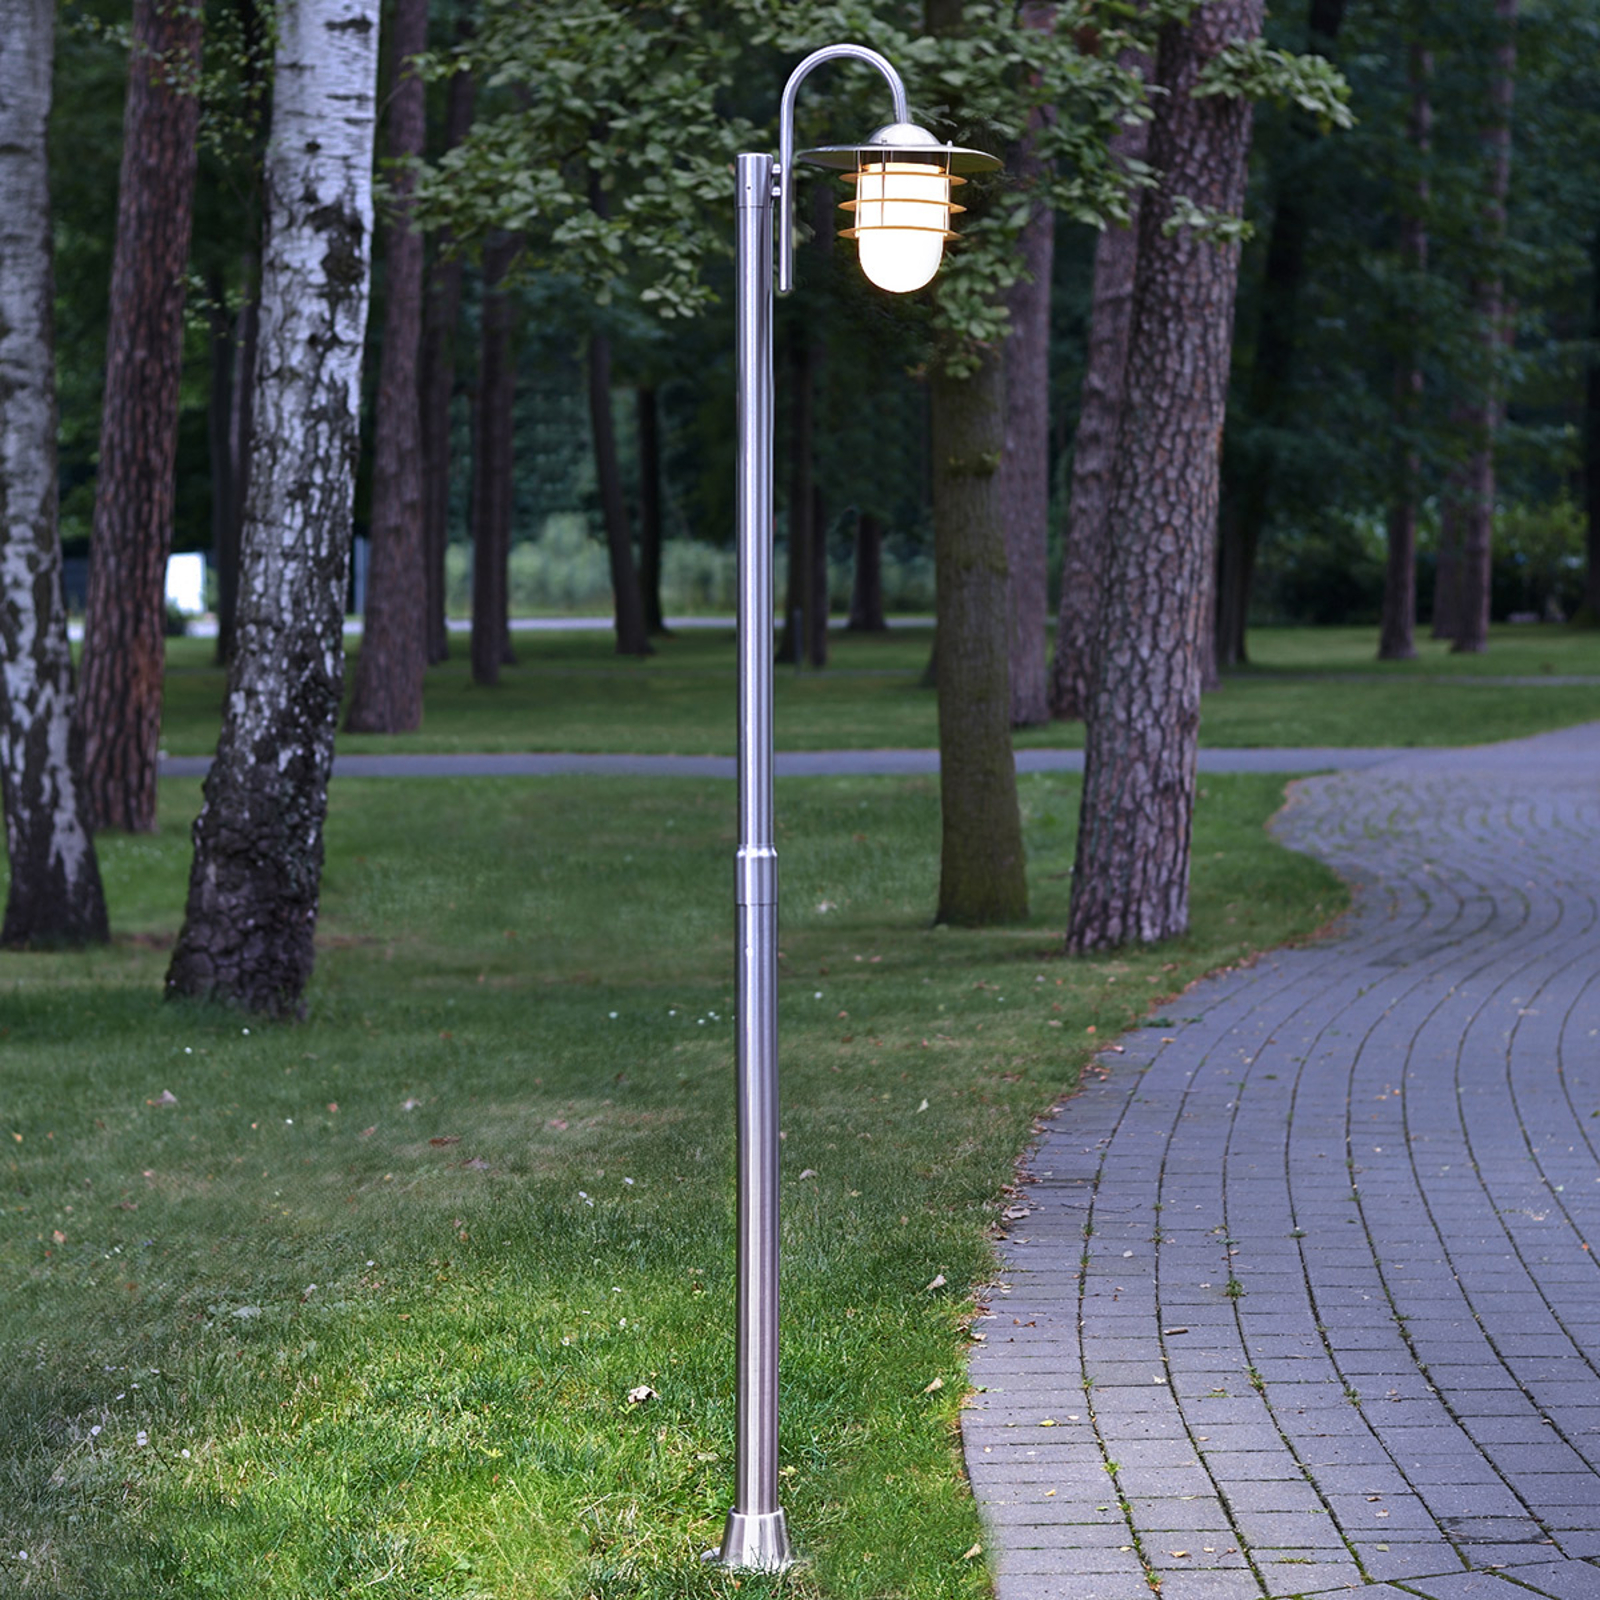 Mian Curved Mast Lamp Made of Stainless Steel_9960027_1